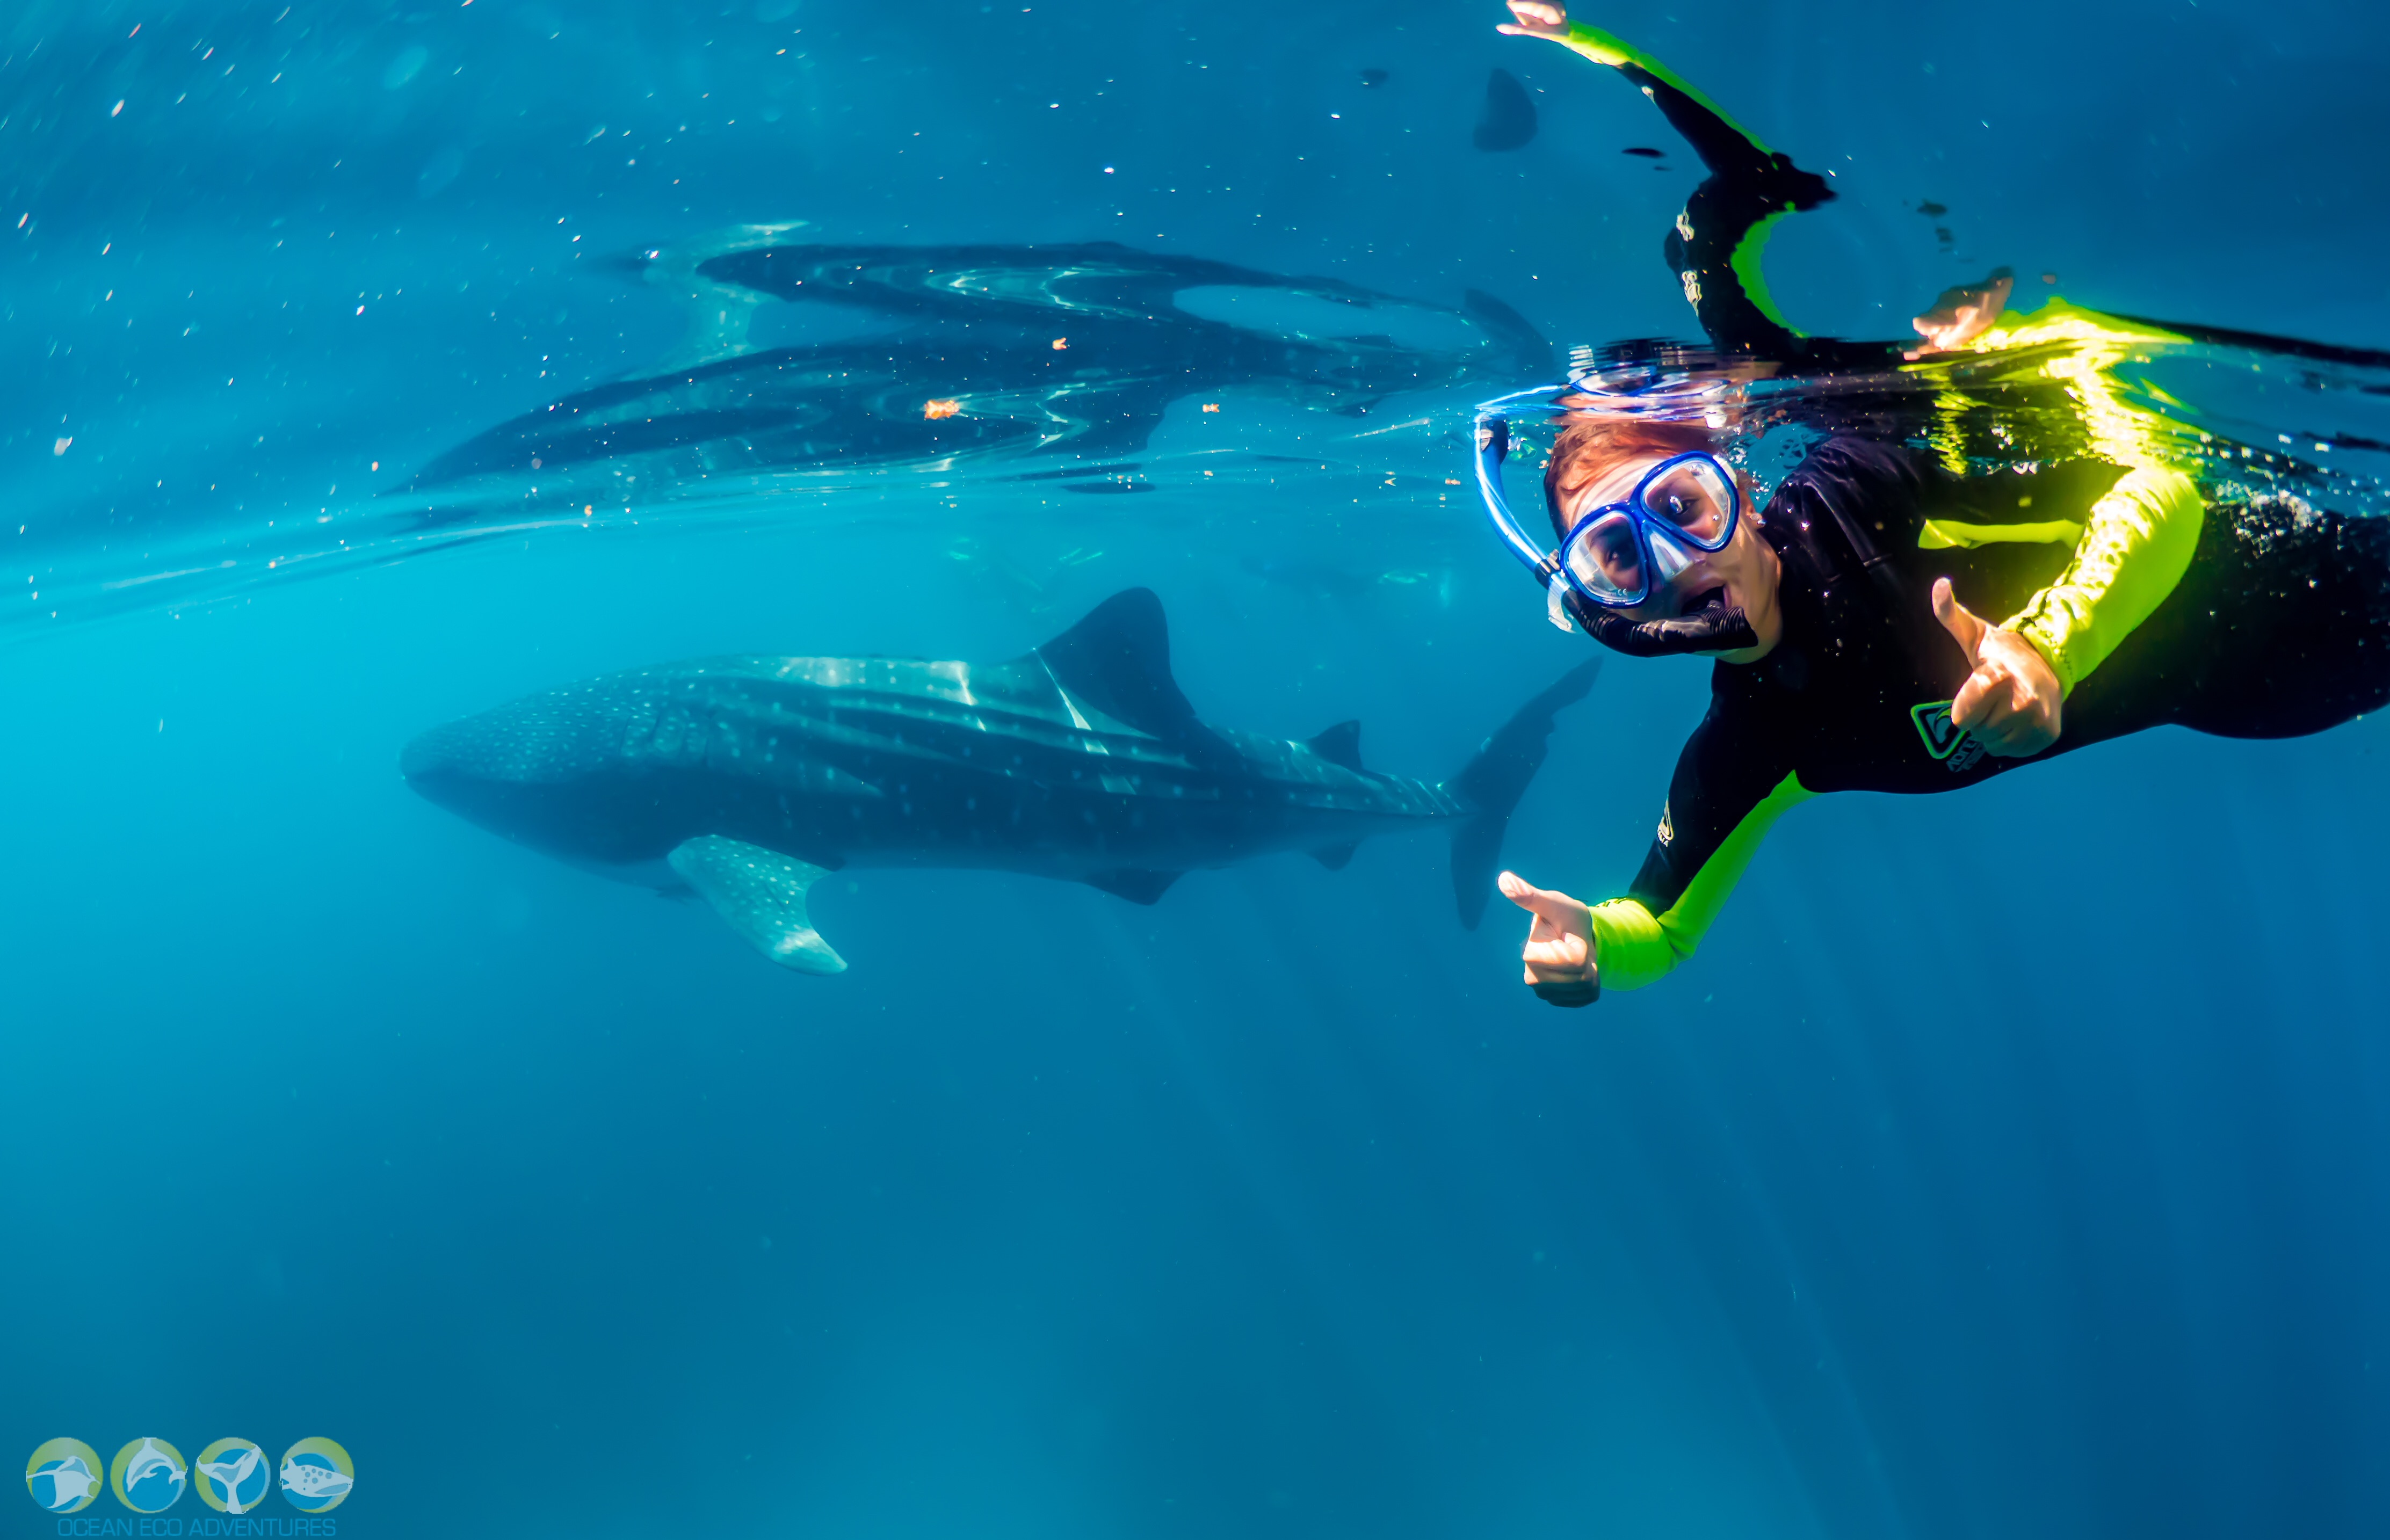 Review Of Ocean Eco Adventures Whale Shark Tour, Exmouth Western Australia